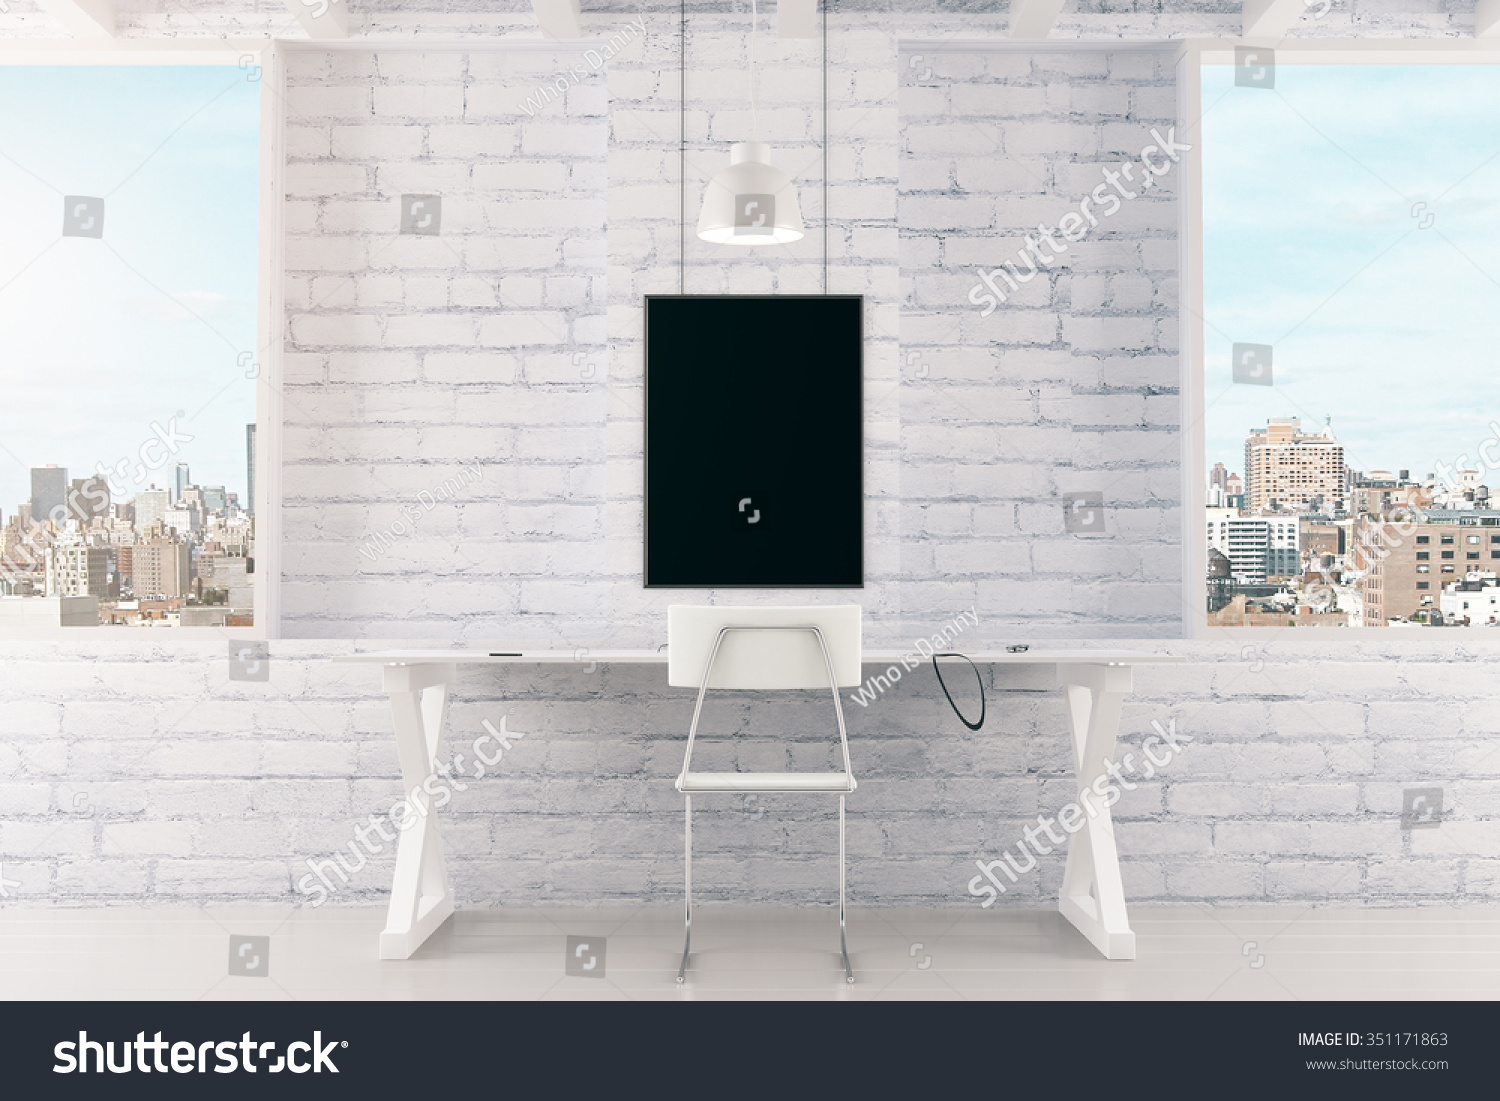 Plain wood table with hipster brick wall background stock photo - Blank Black Picture Frame On White Brick Wall And Windows In Loft Room Mock Up